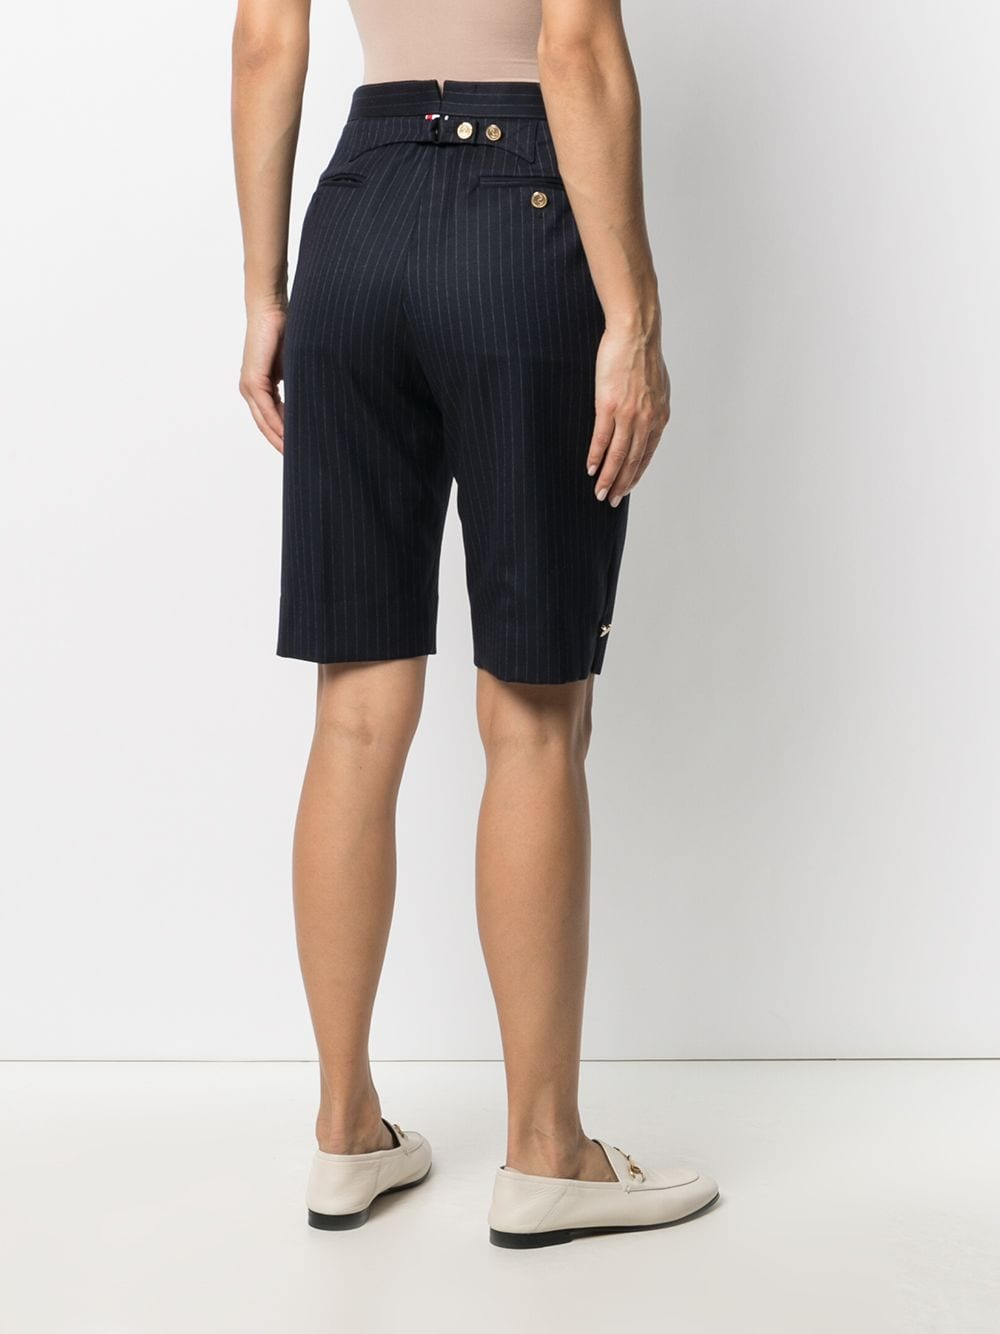 THOM BROWNE WOMEN MENSWEAR FIT BERMUDA SHORT IN NARROW CHALK STRIPE 120'S FLANNEL